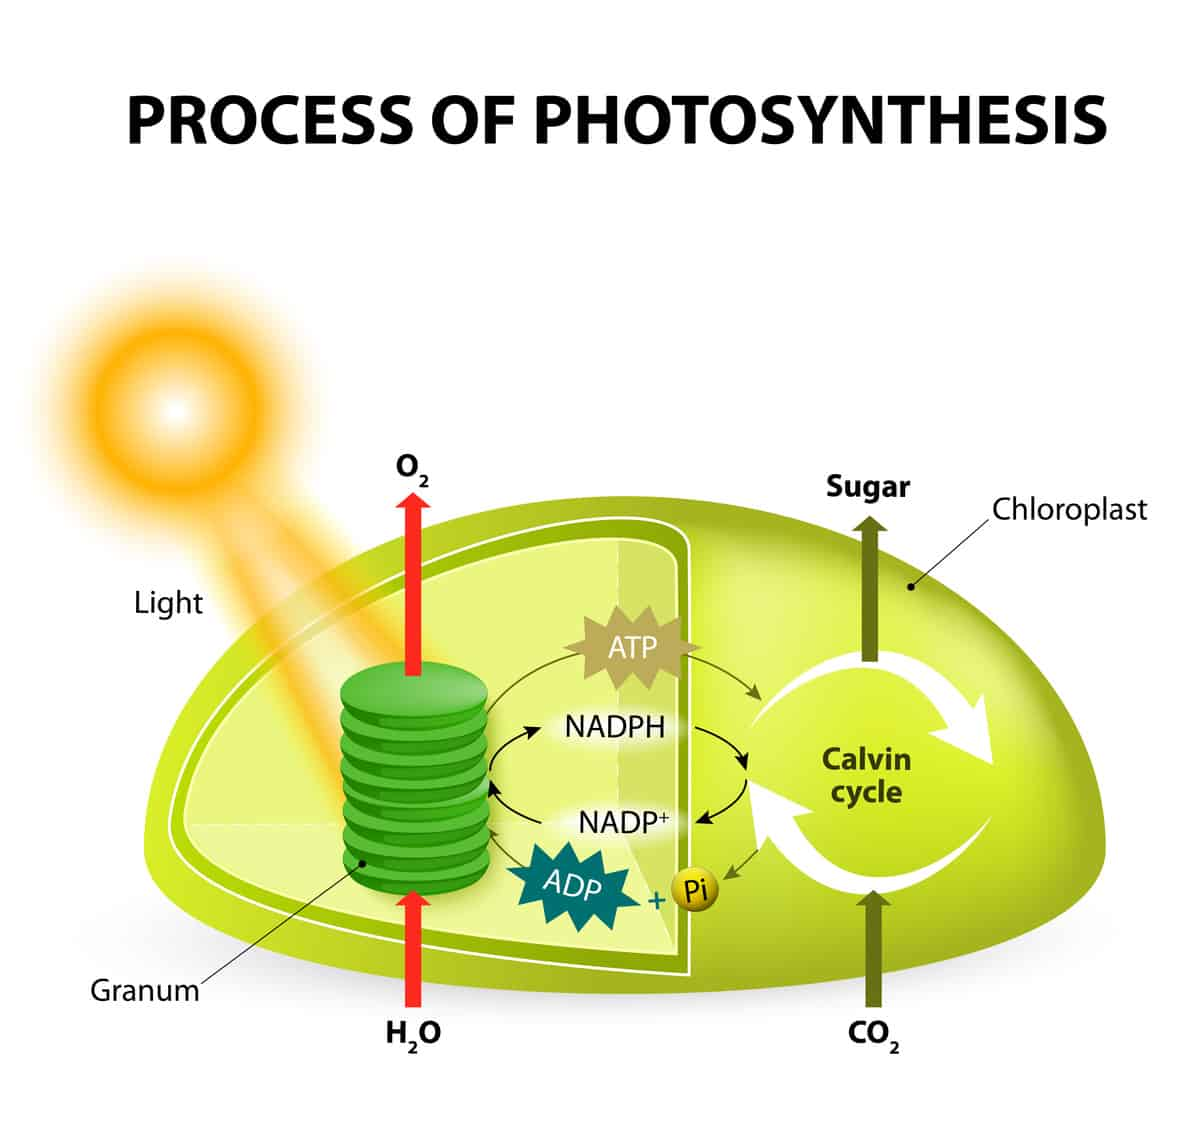 Diagram showing the process of photosynthesis